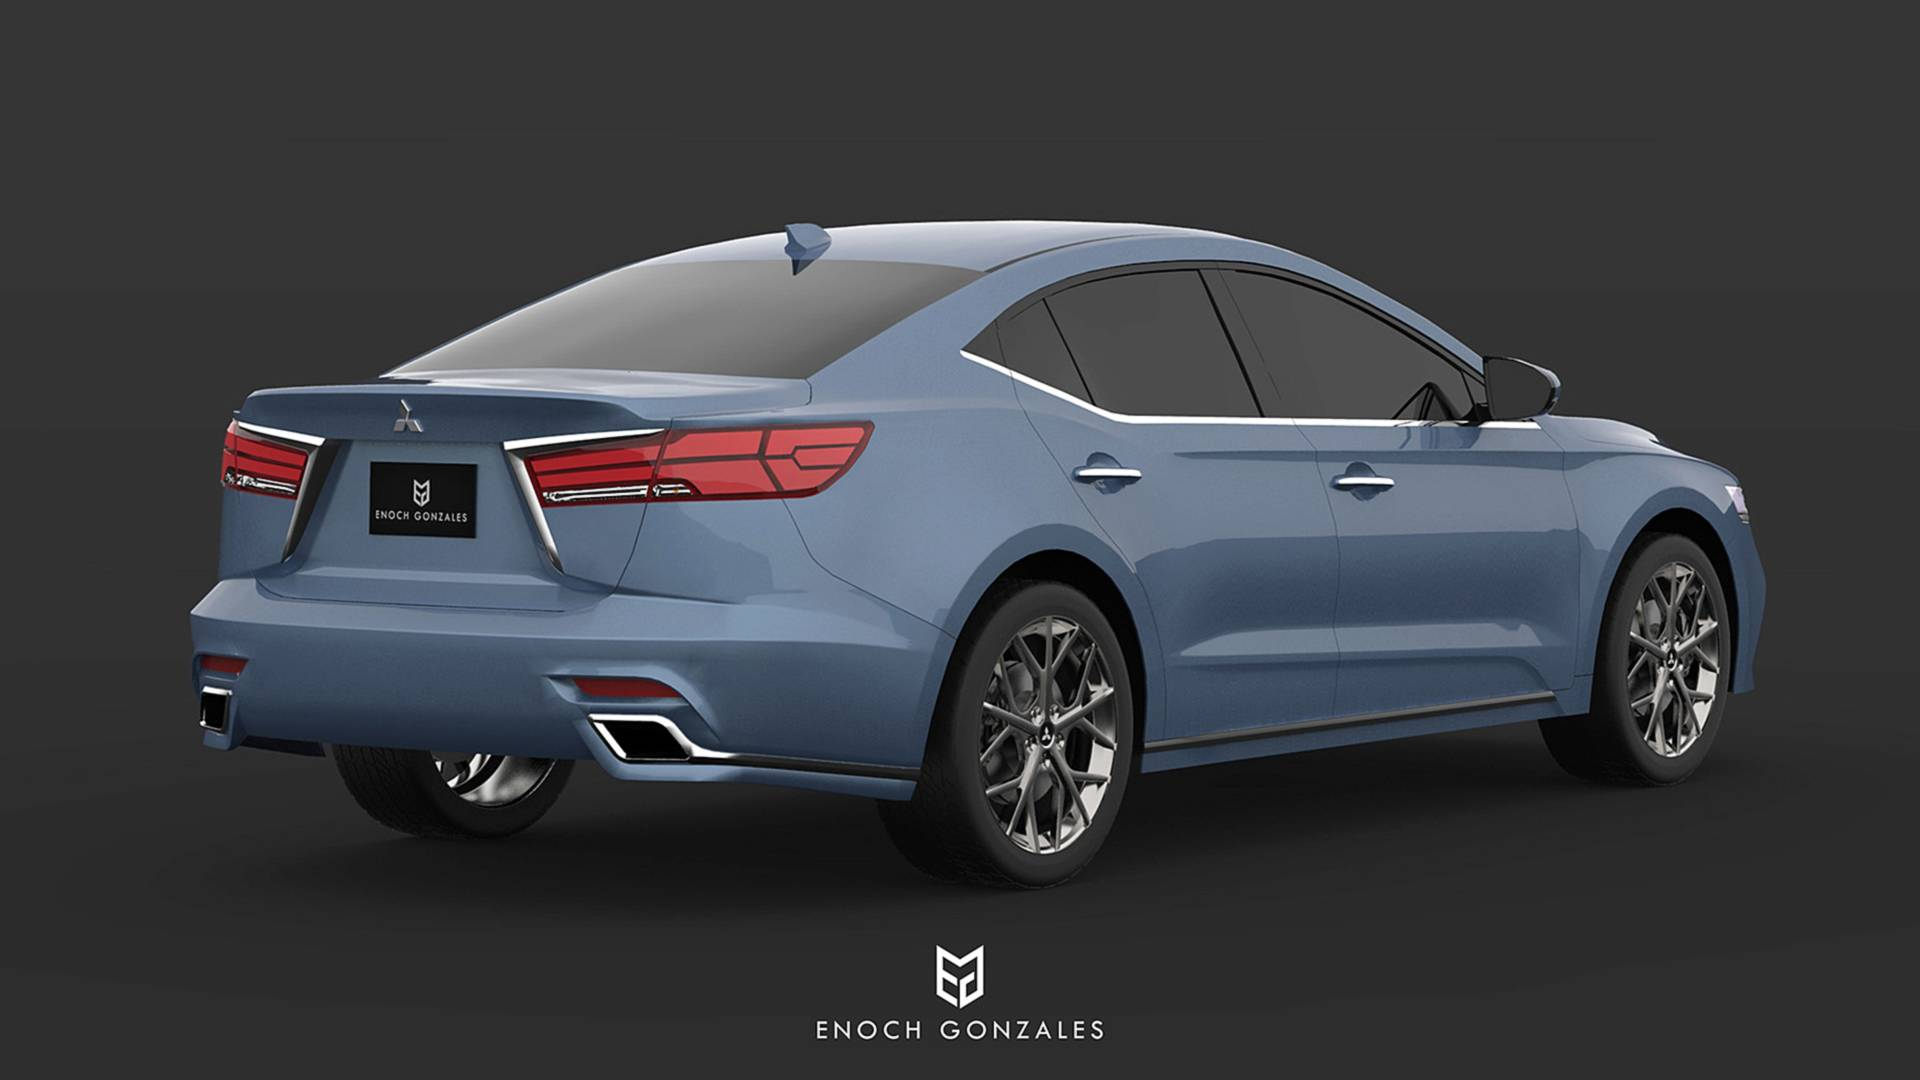 2020 Mitsubishi Galant Redesign and Concept